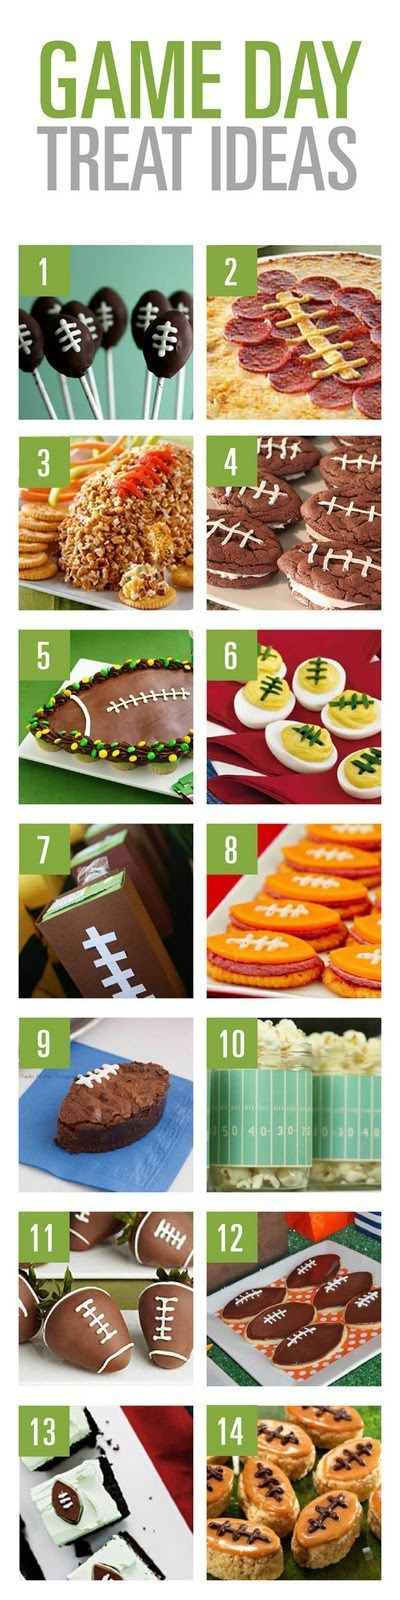 Football Game Day Treat Ideas! - Design Eat Repeat